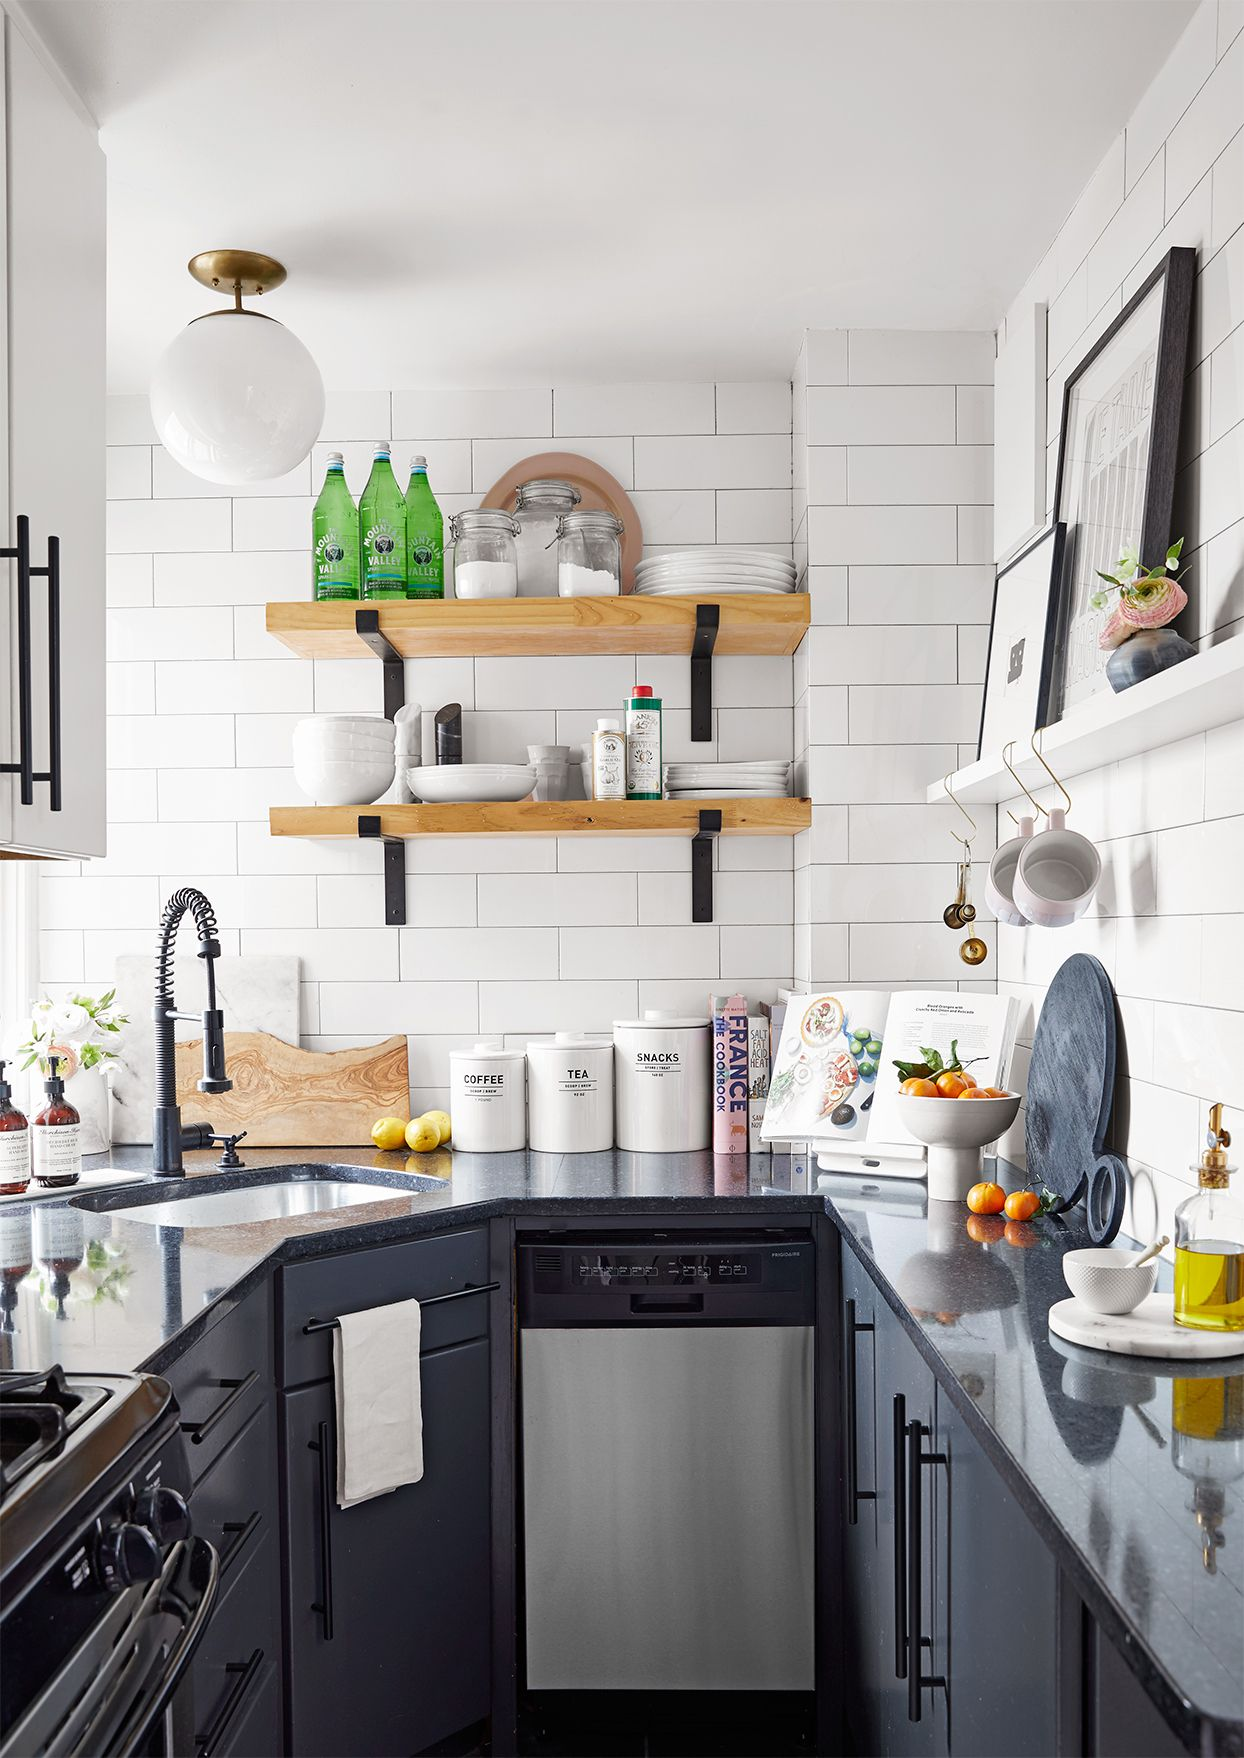 19 creative storage ideas to solve your small space problems in 2020 smart kitchen small on kitchen organization for small spaces id=32148